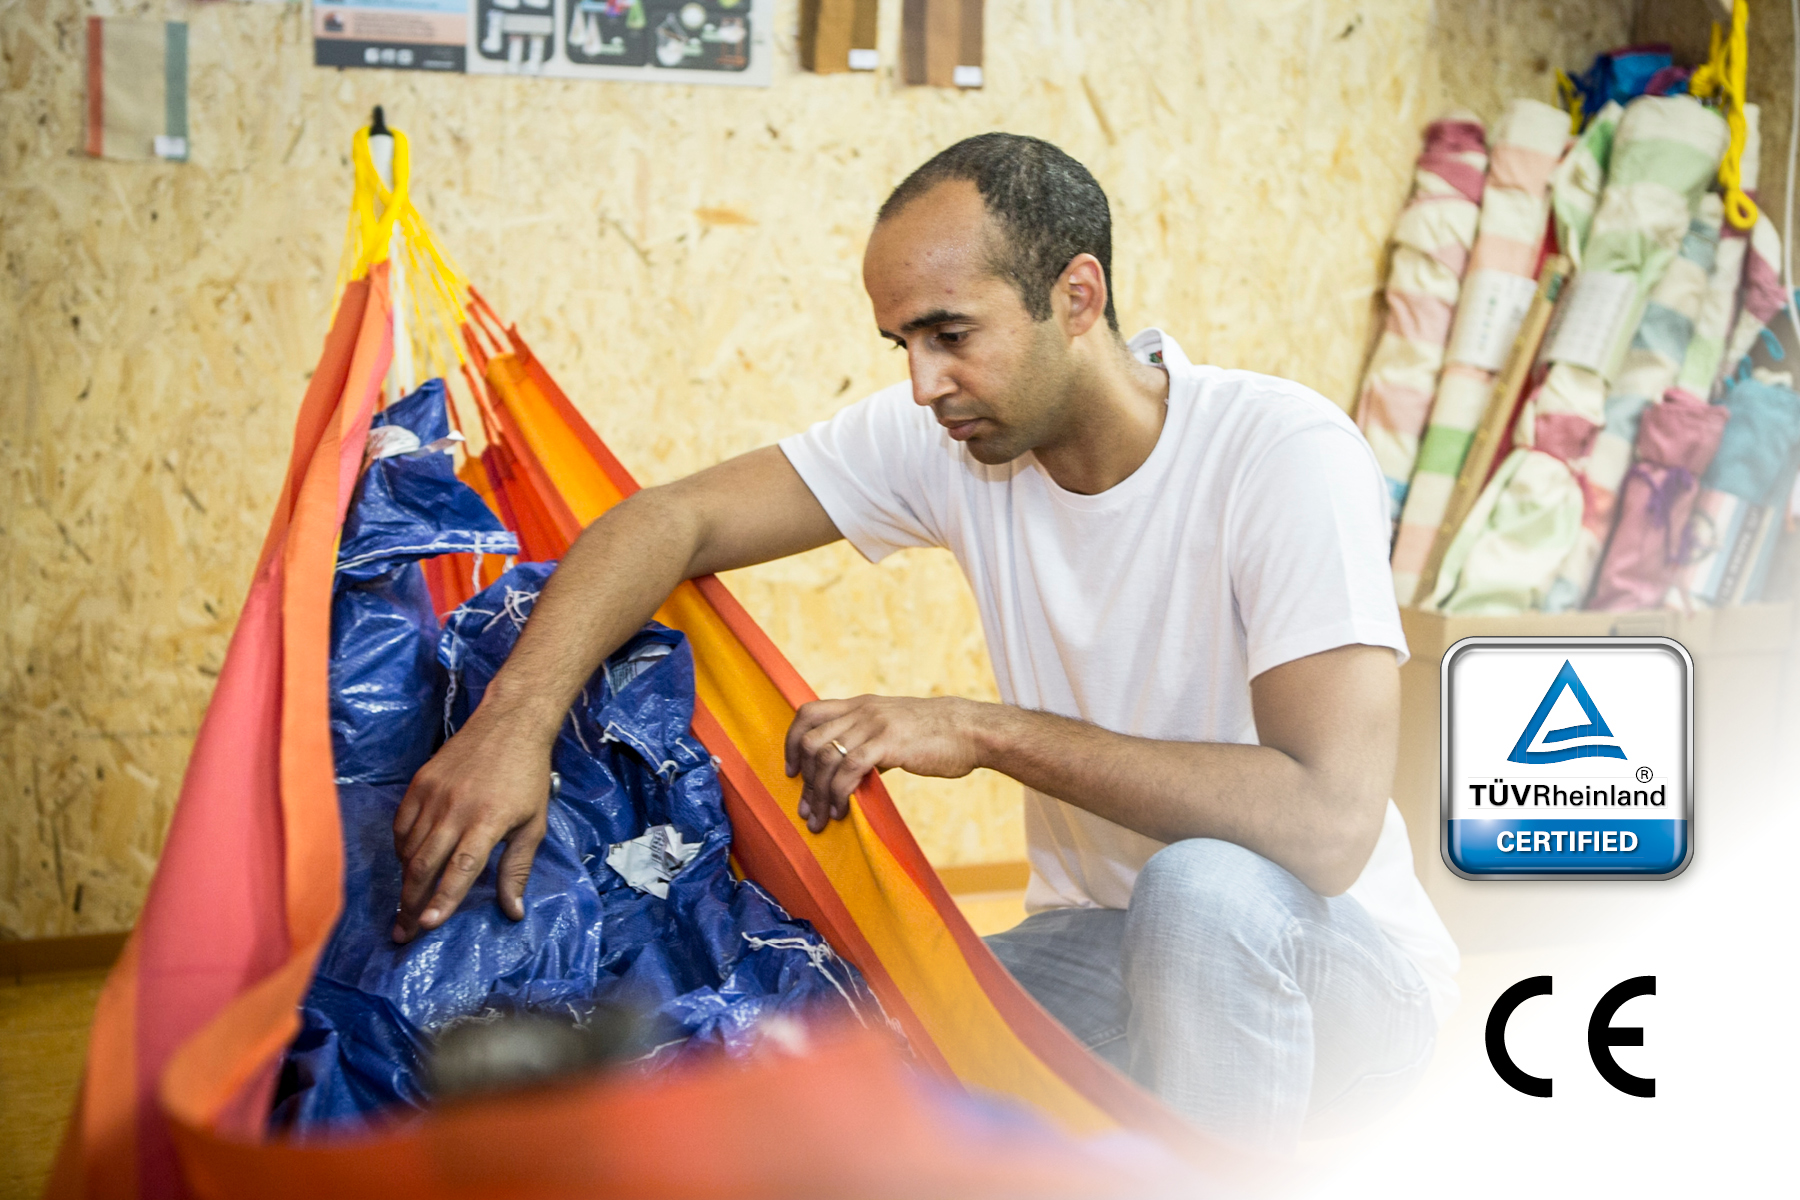 Rigorous Product Safety Testing and Sustainable Supply Chain Certifications at LA SIESTA Hammocks